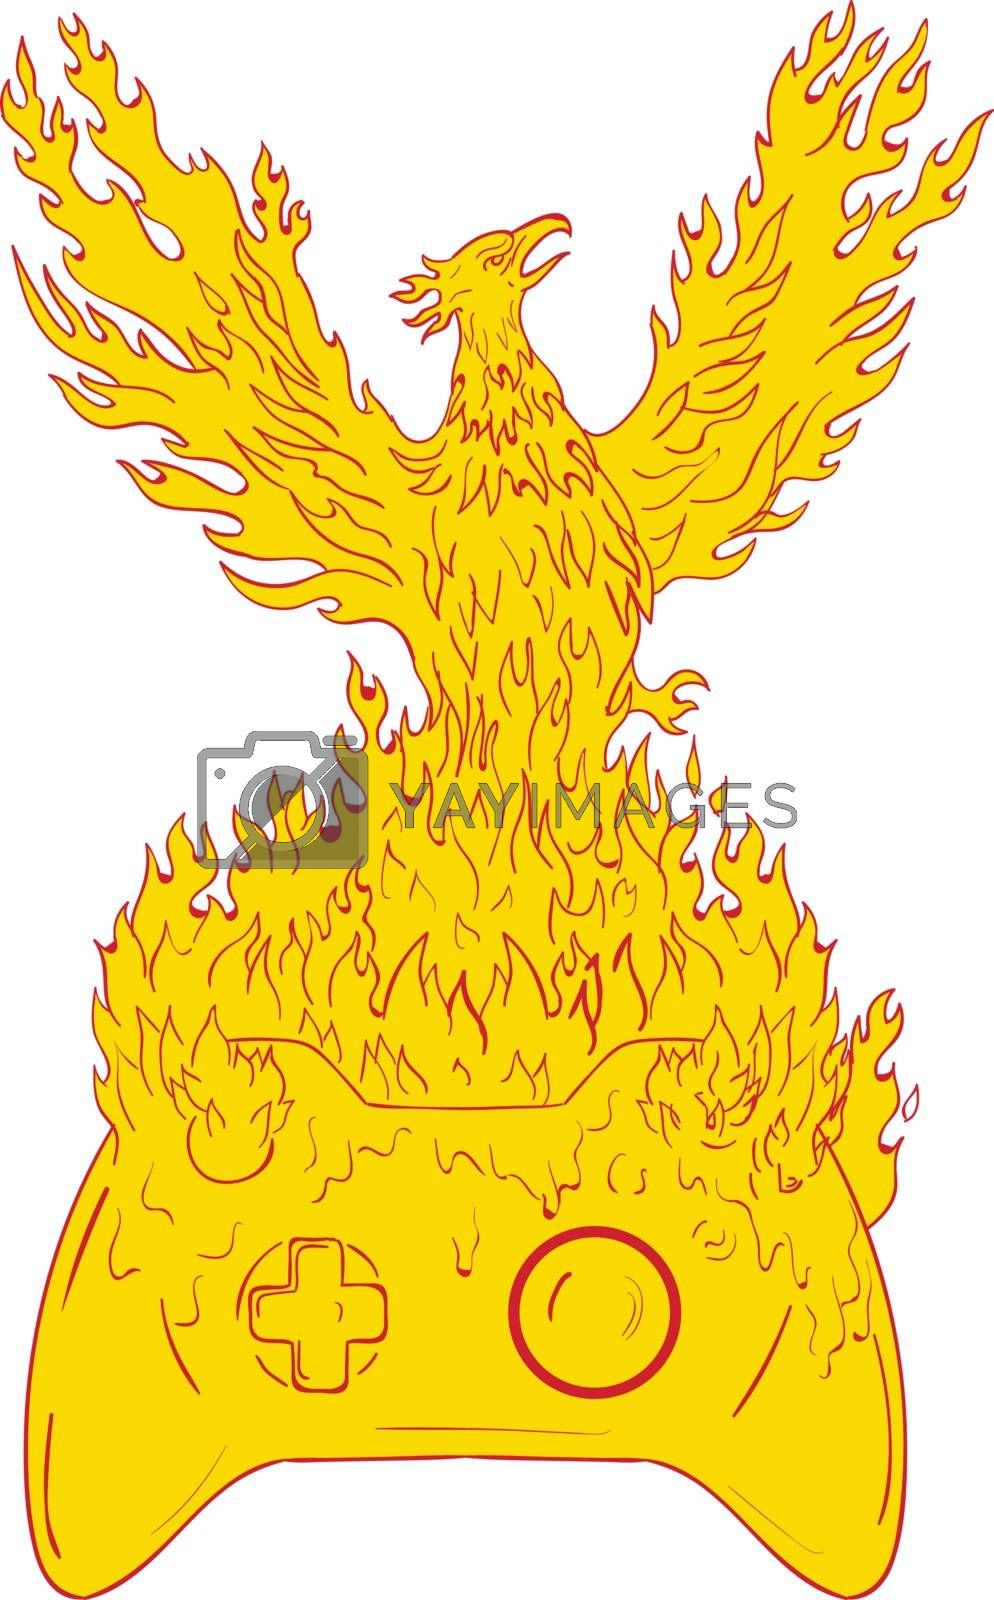 Drawing sketch style illustration of a phoenix looking to the side rising up from fiery flames, wings raised for flight over game controller set on isolated white background.